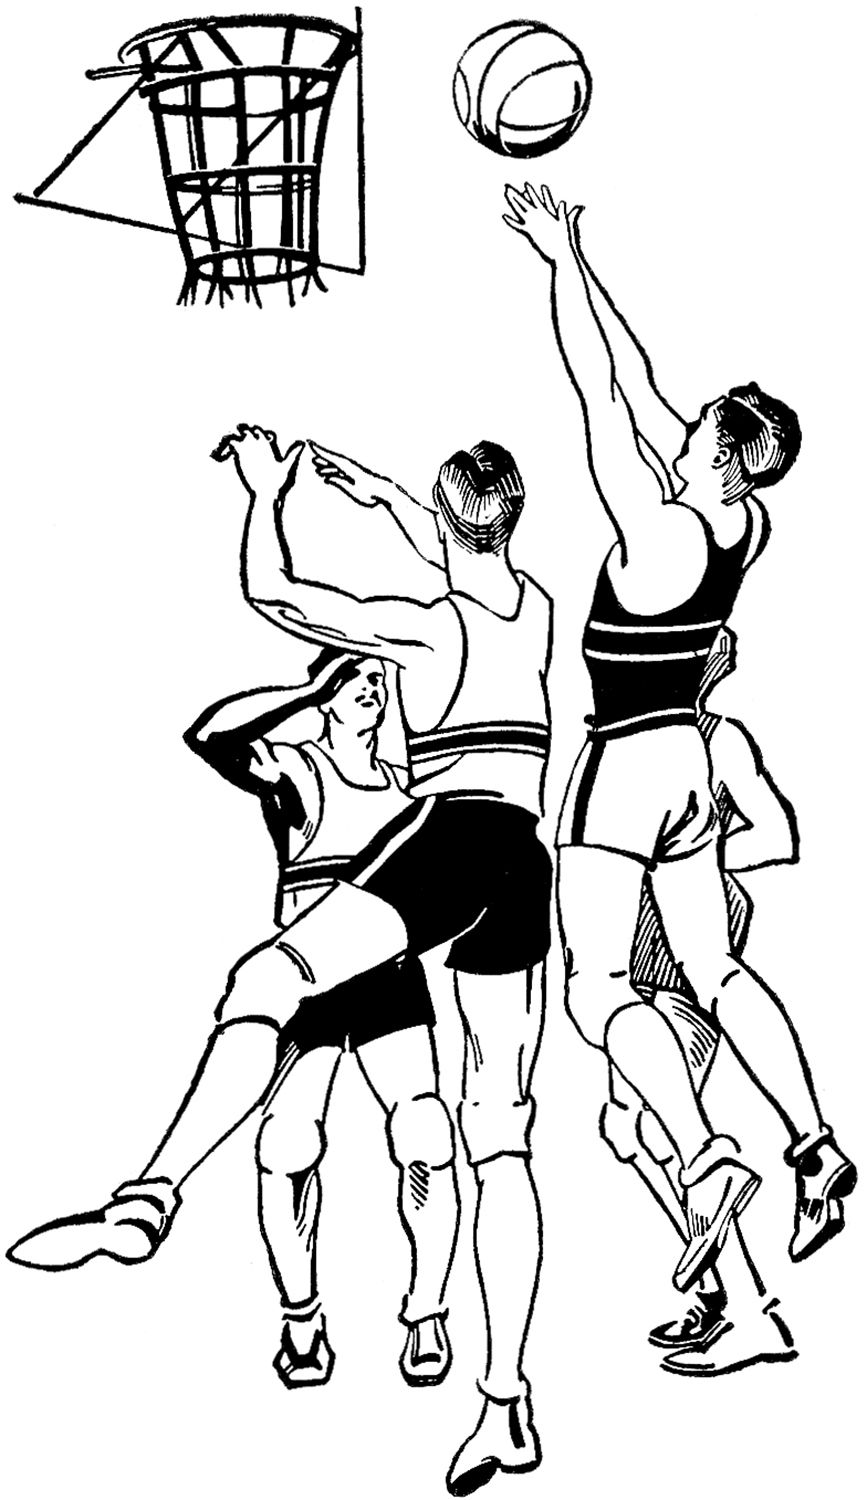 Vintage Basketball Image Sports coloring pages, Graphics